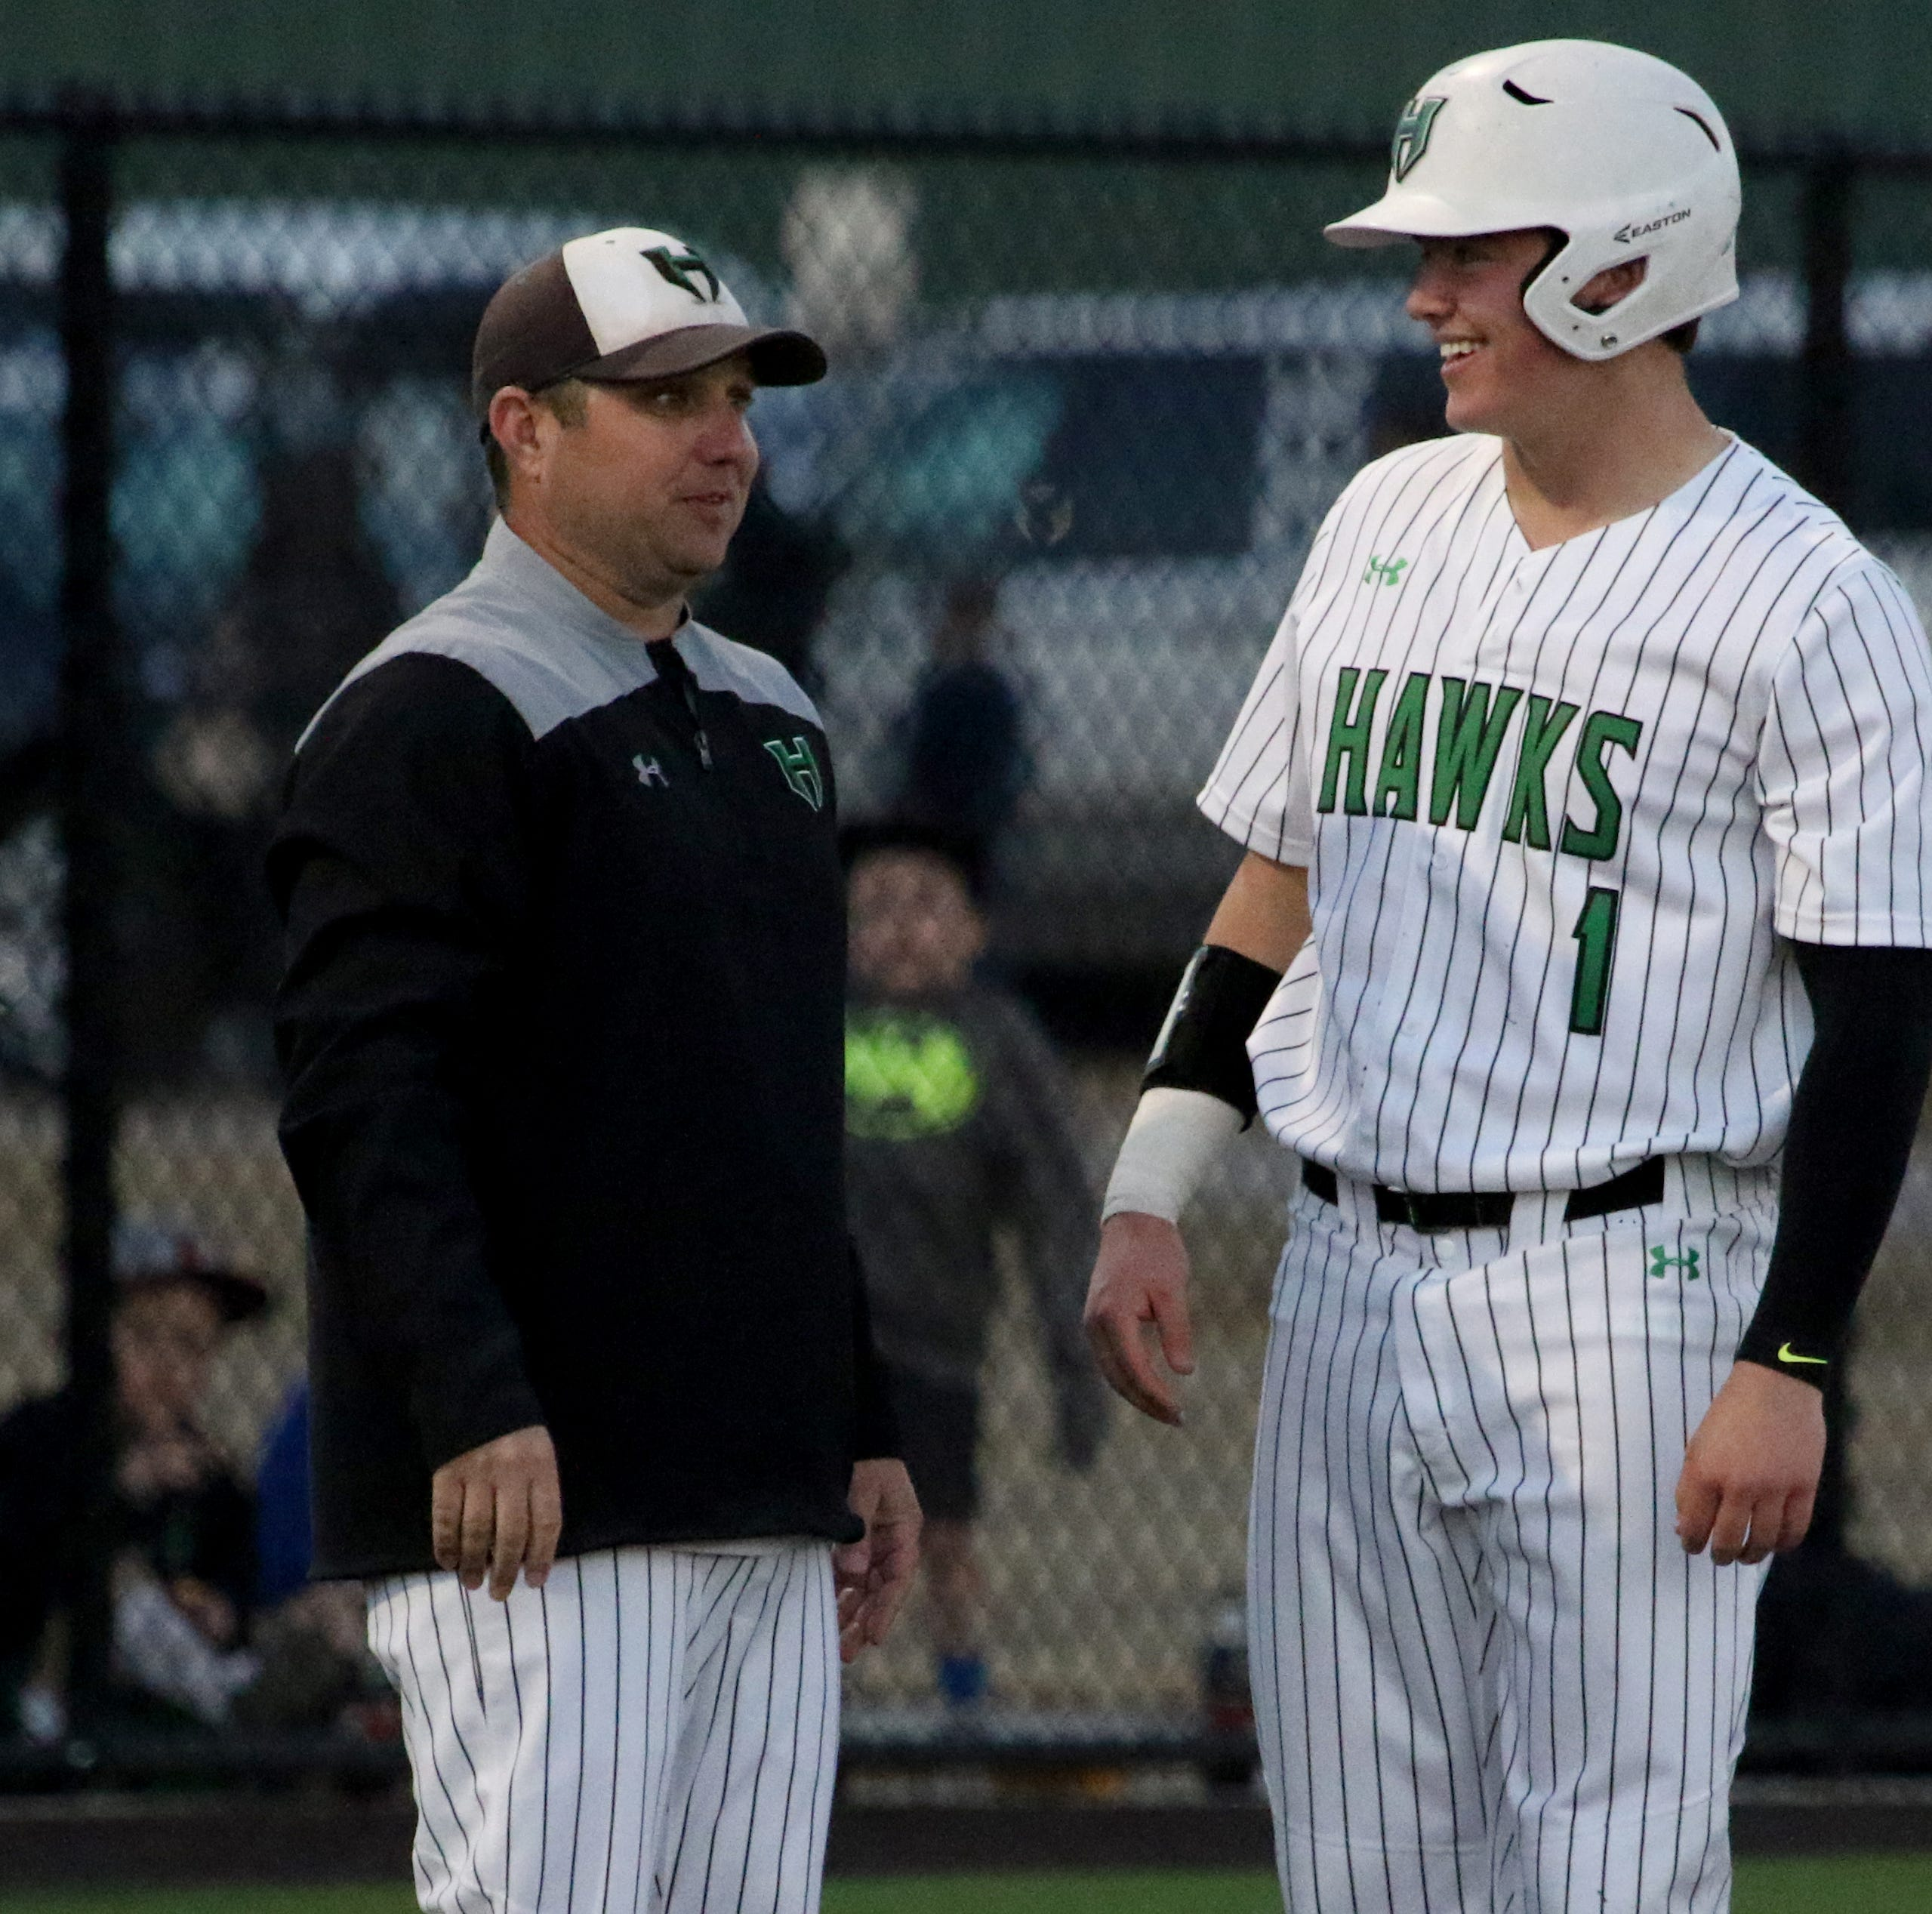 Iowa Park gets what it wants with one-game format against No. 1 Argyle in regional finals